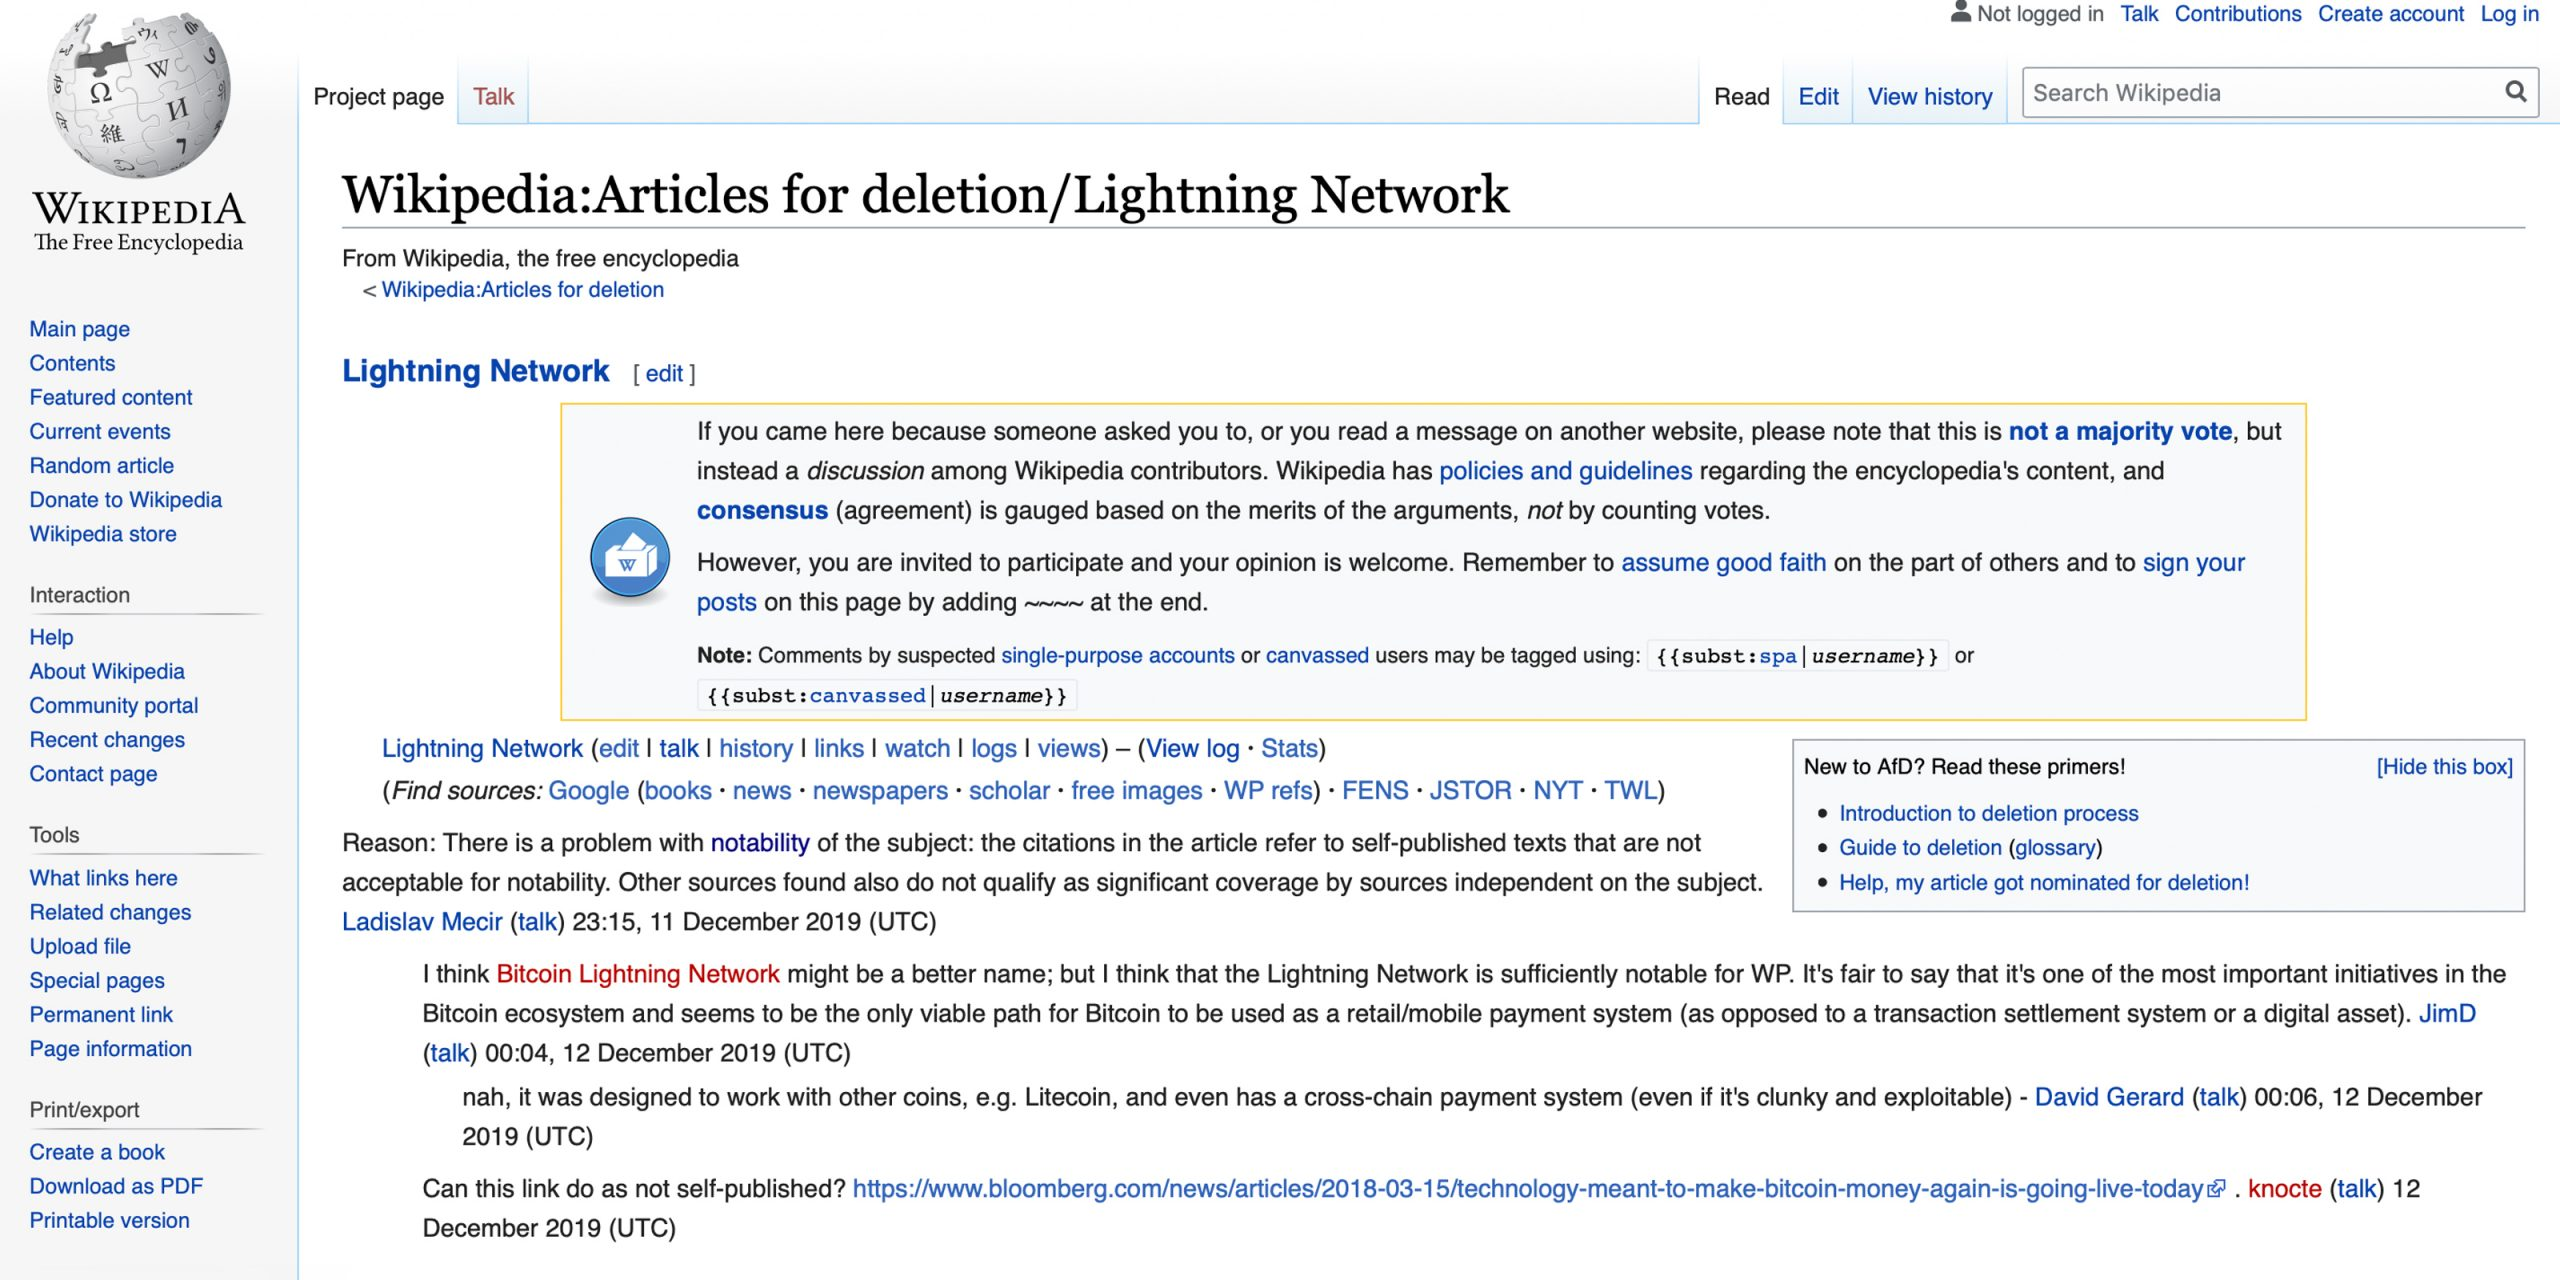 Lightning Network Wiki Page Faces Removal for Lack of Notability